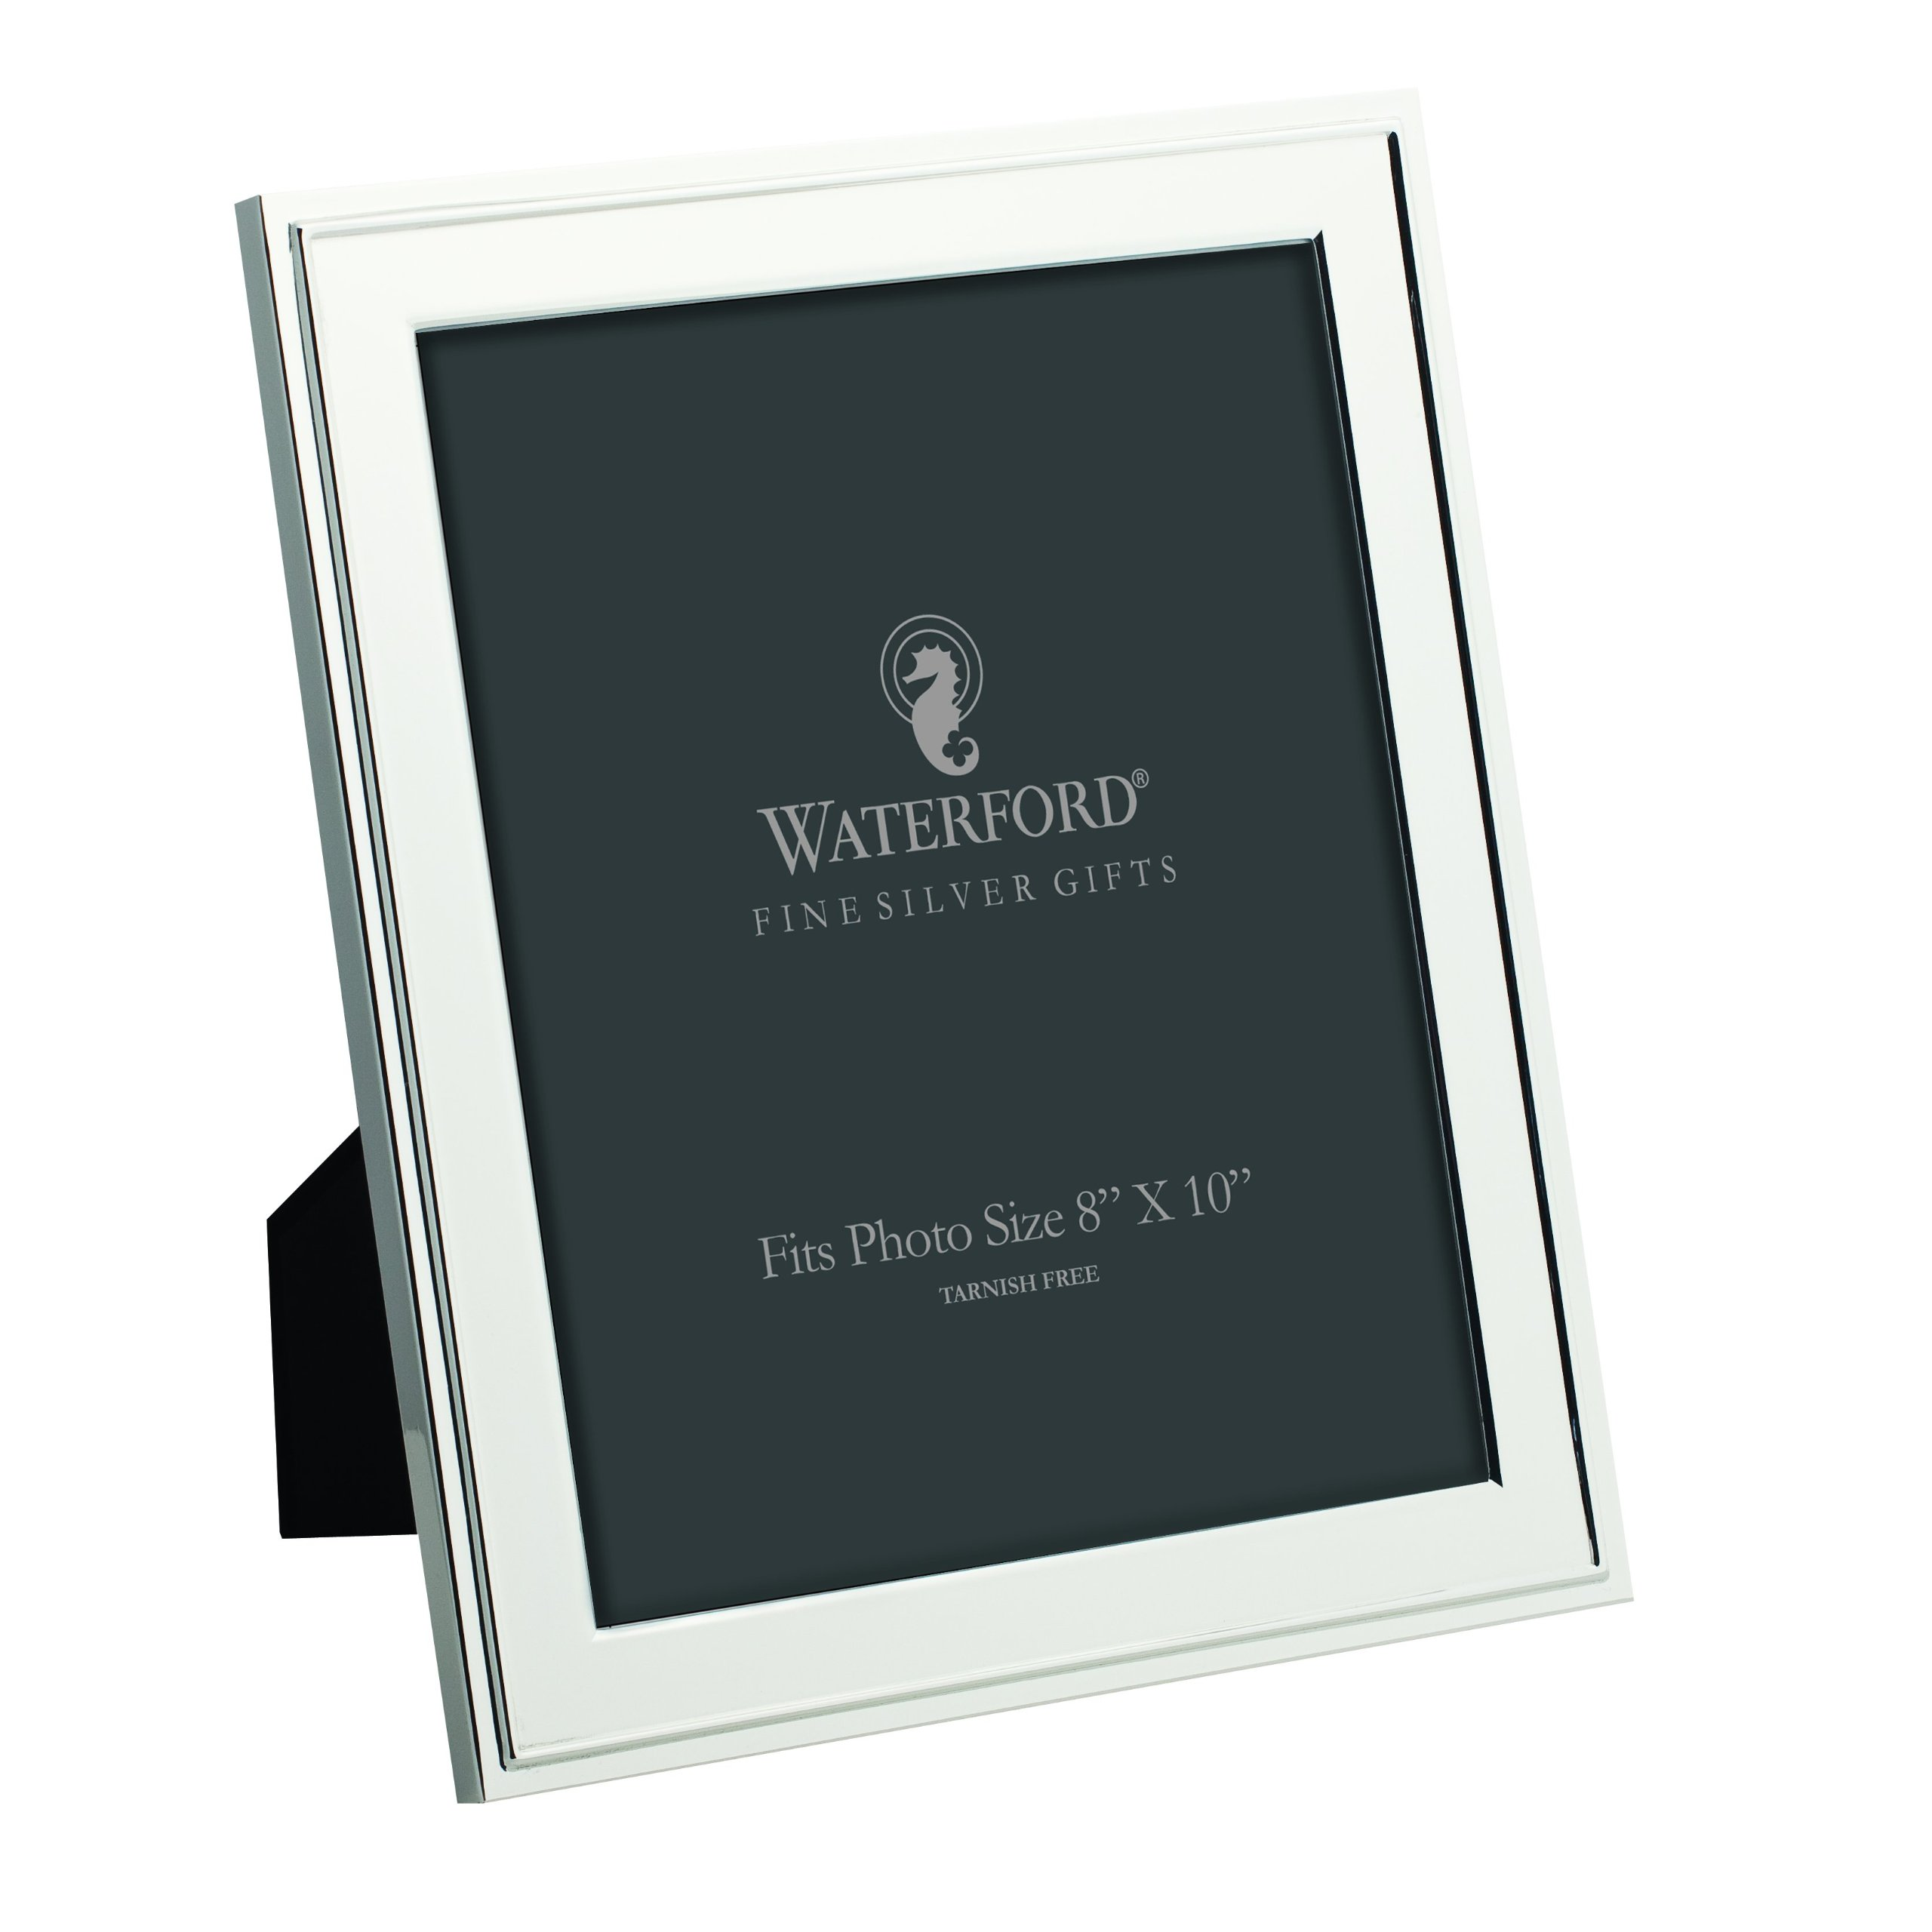 Waterford Classic 8 by 10 Frame by Waterford Fine Silver Gifts